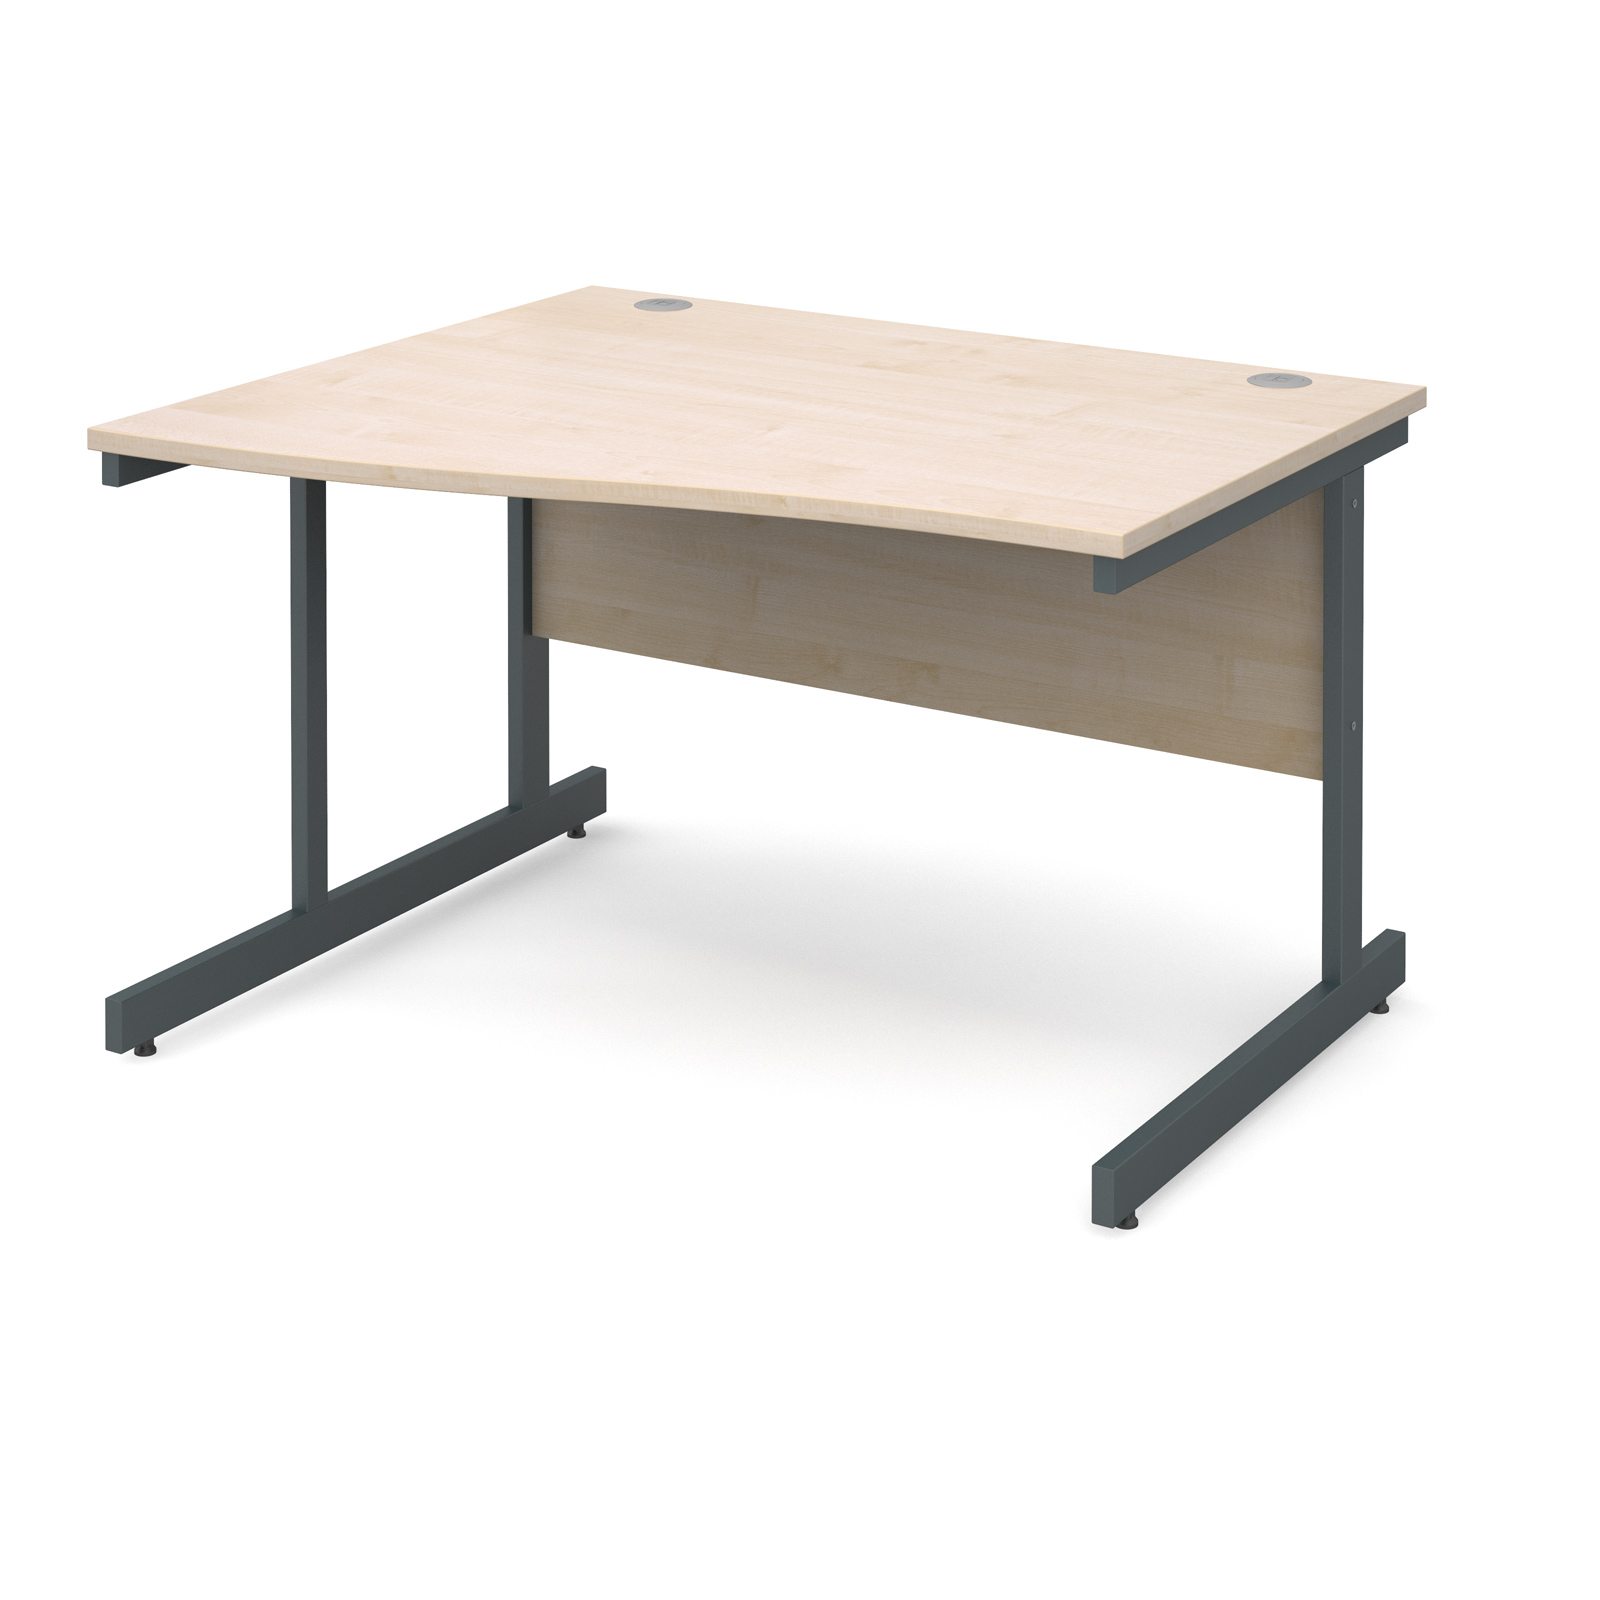 Dams Contract I Maple Desk | Wave